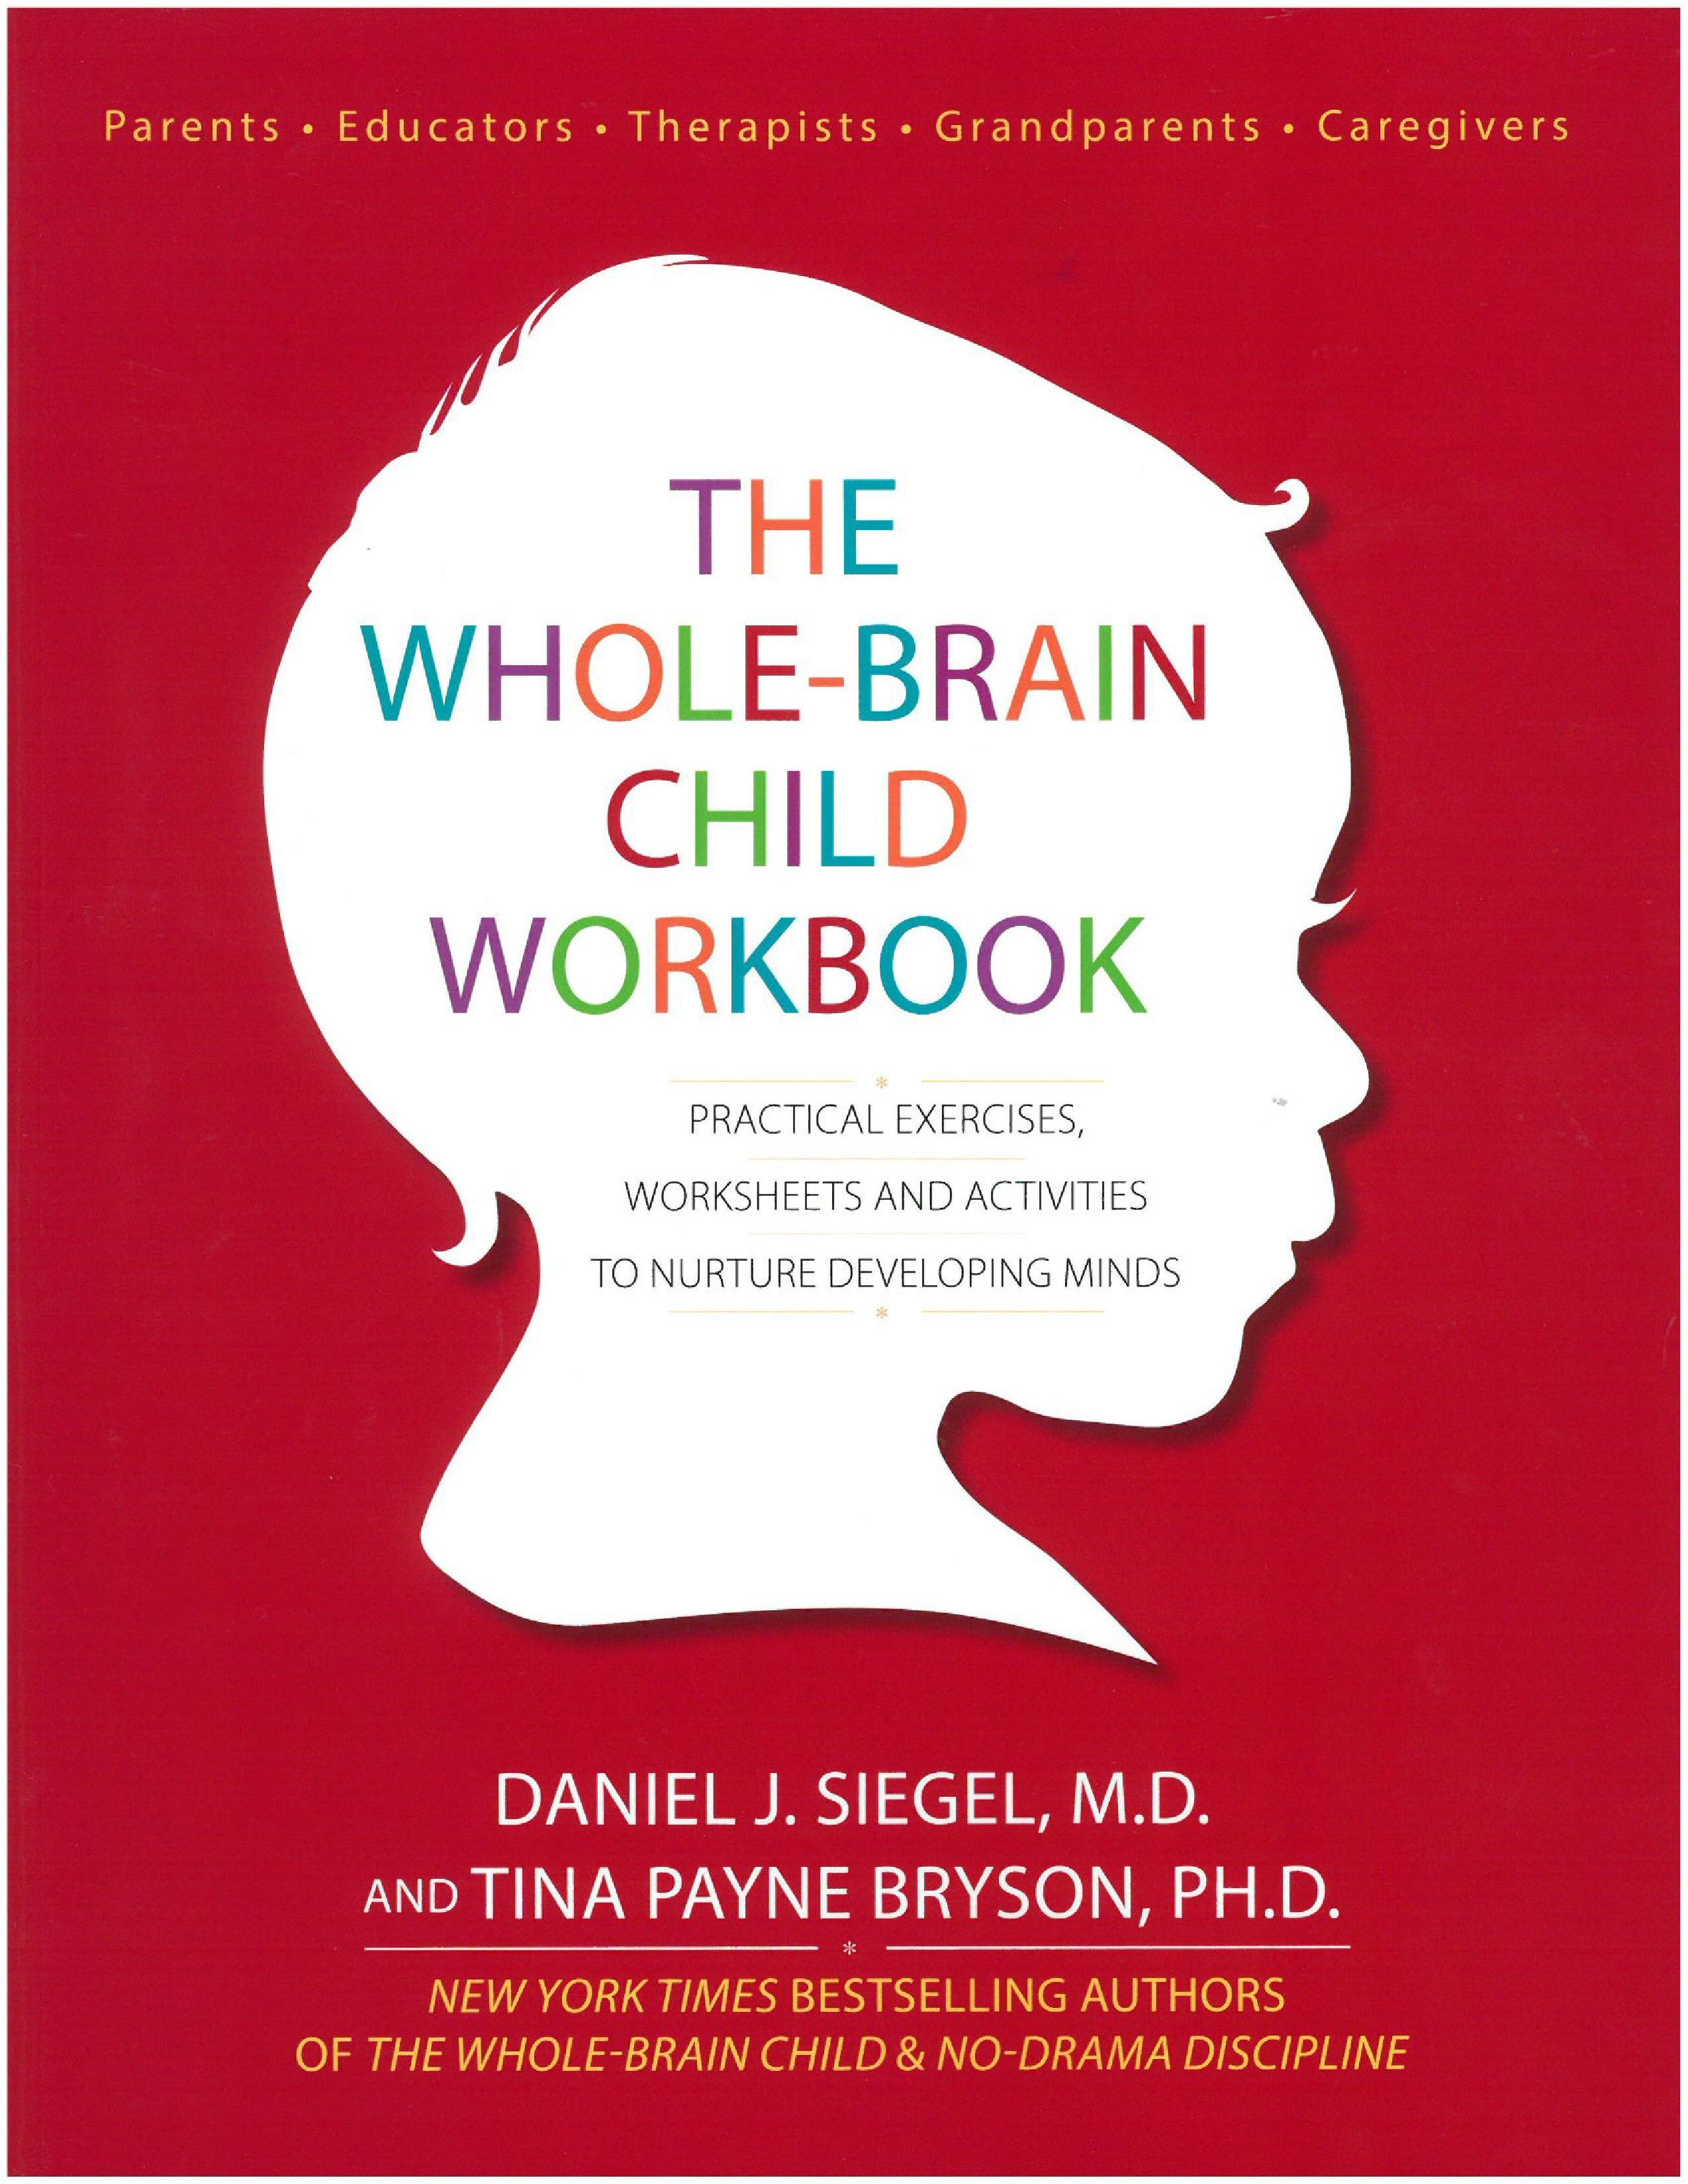 How To Apply Brain Science Of >> A Companion Workbook To The Whole Brain Child To Apply Whole Brain